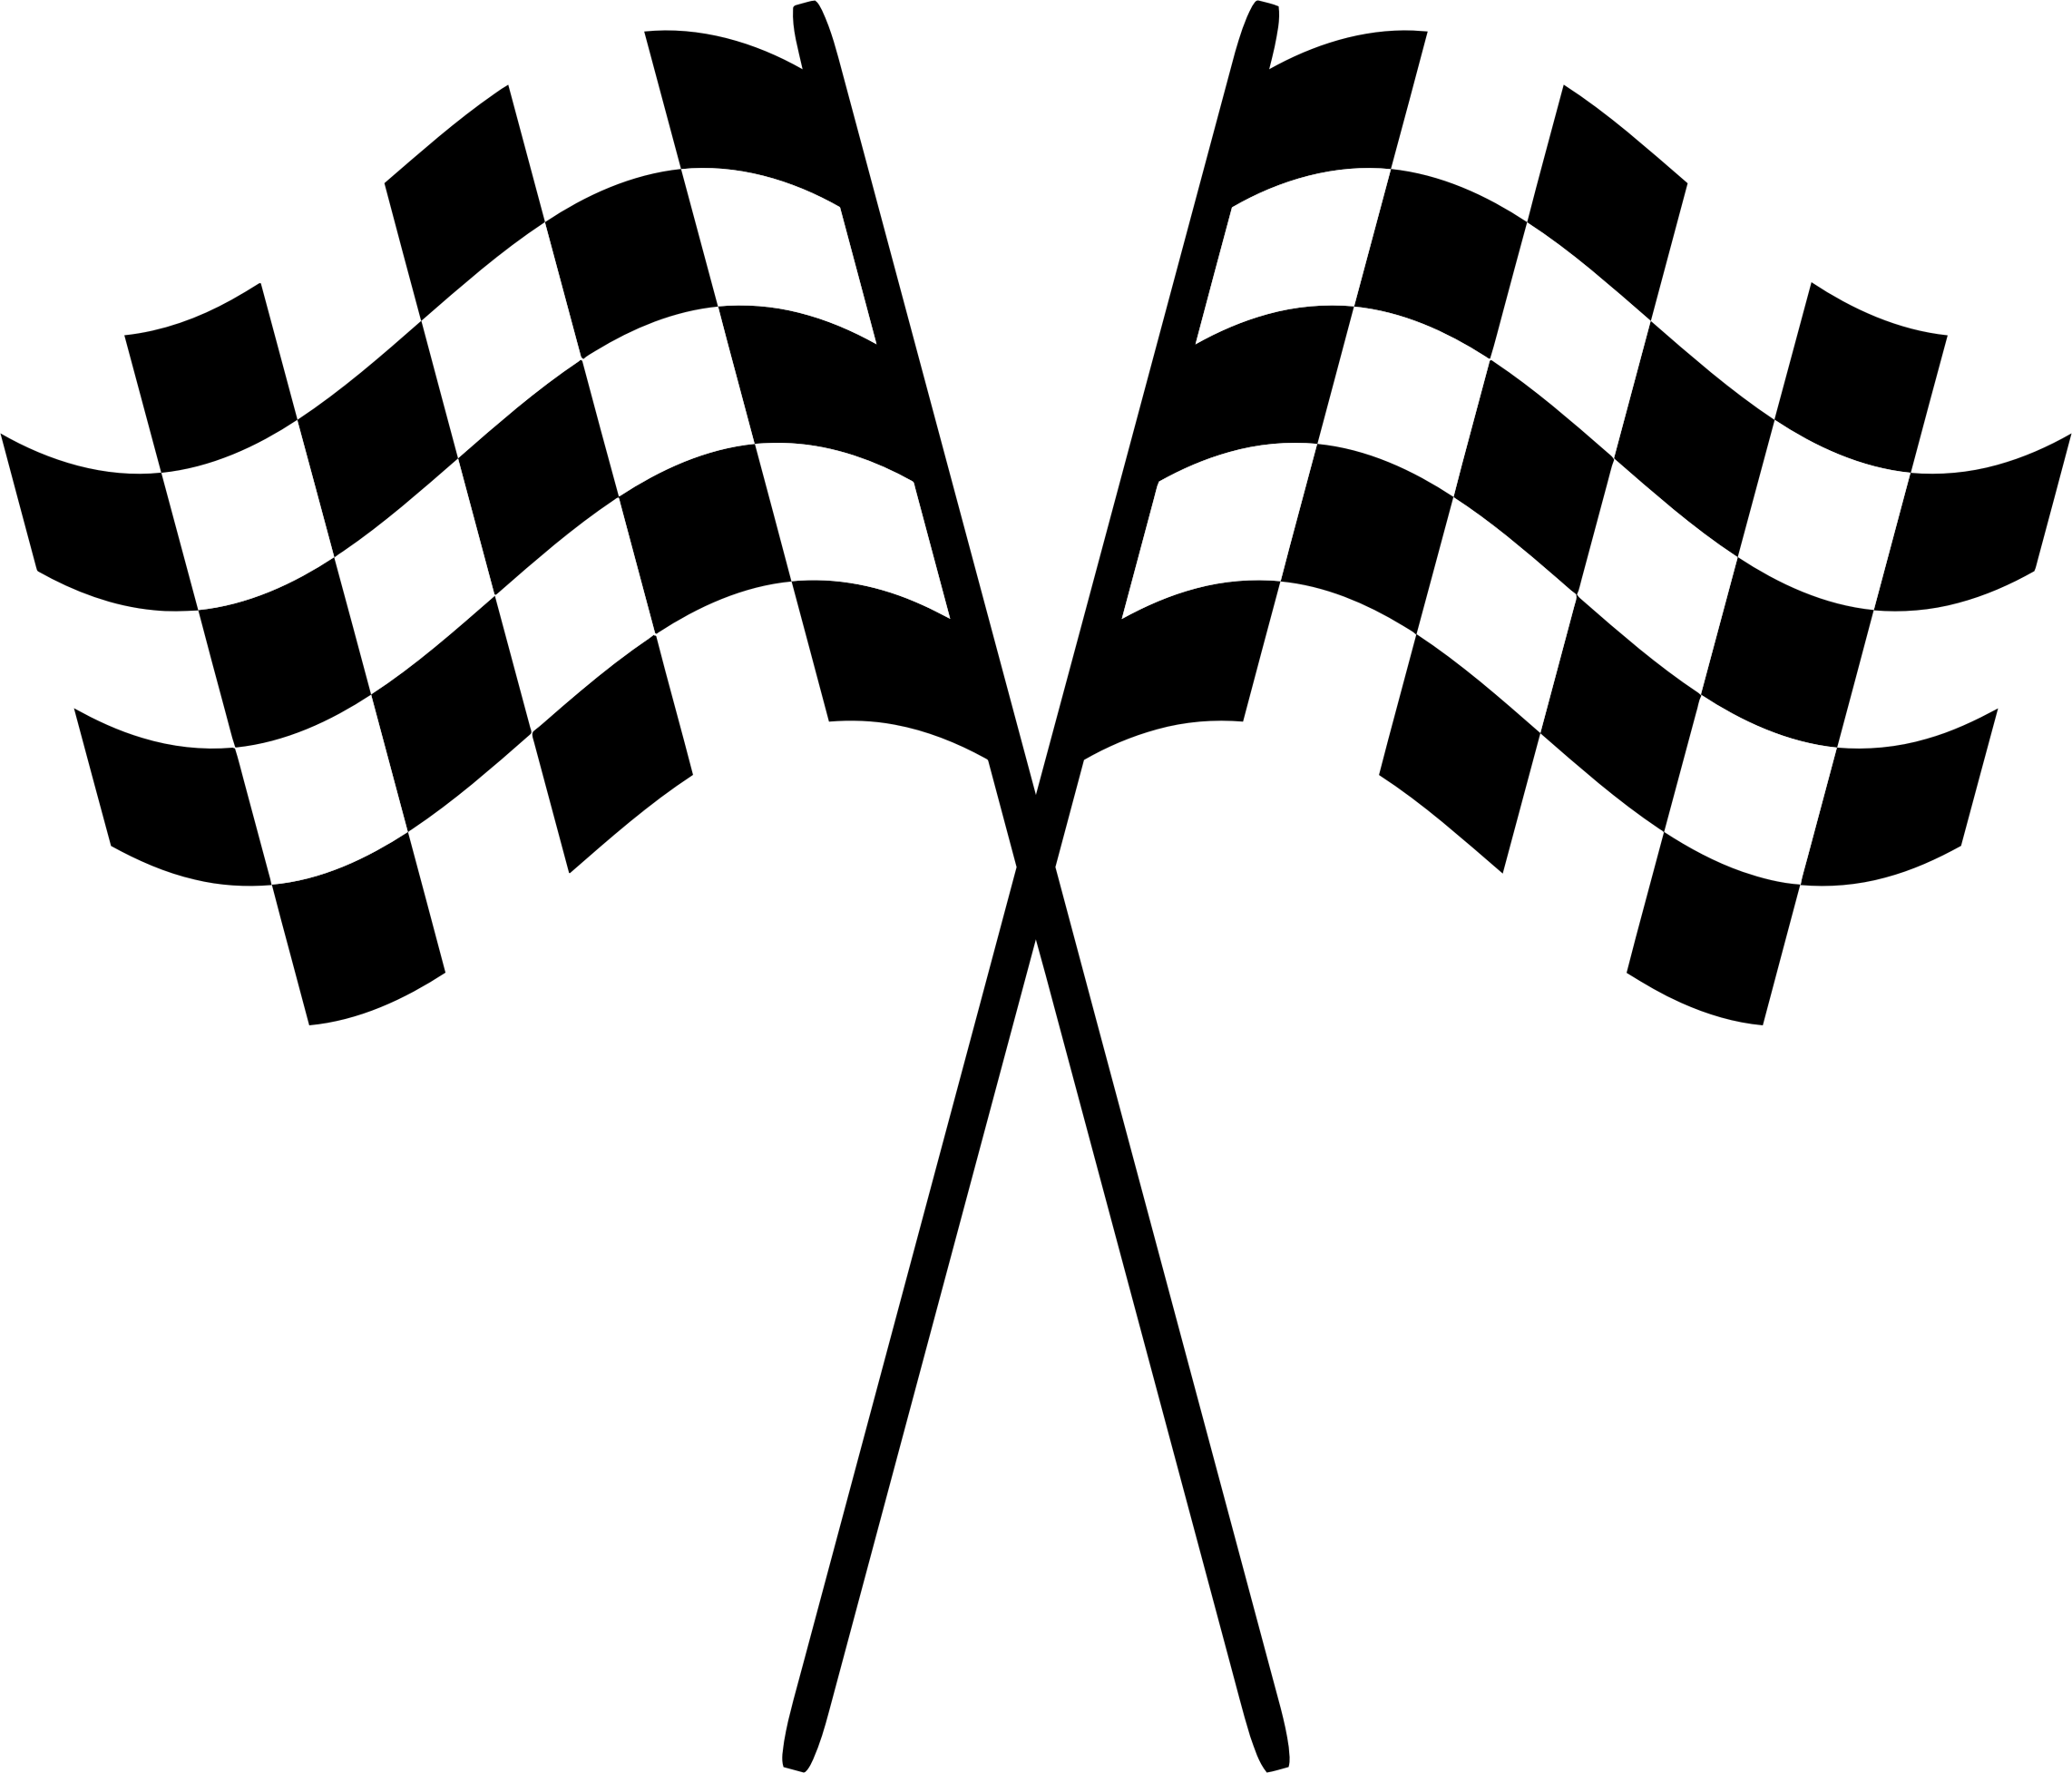 Checkered vector svg. Racing flags icons png